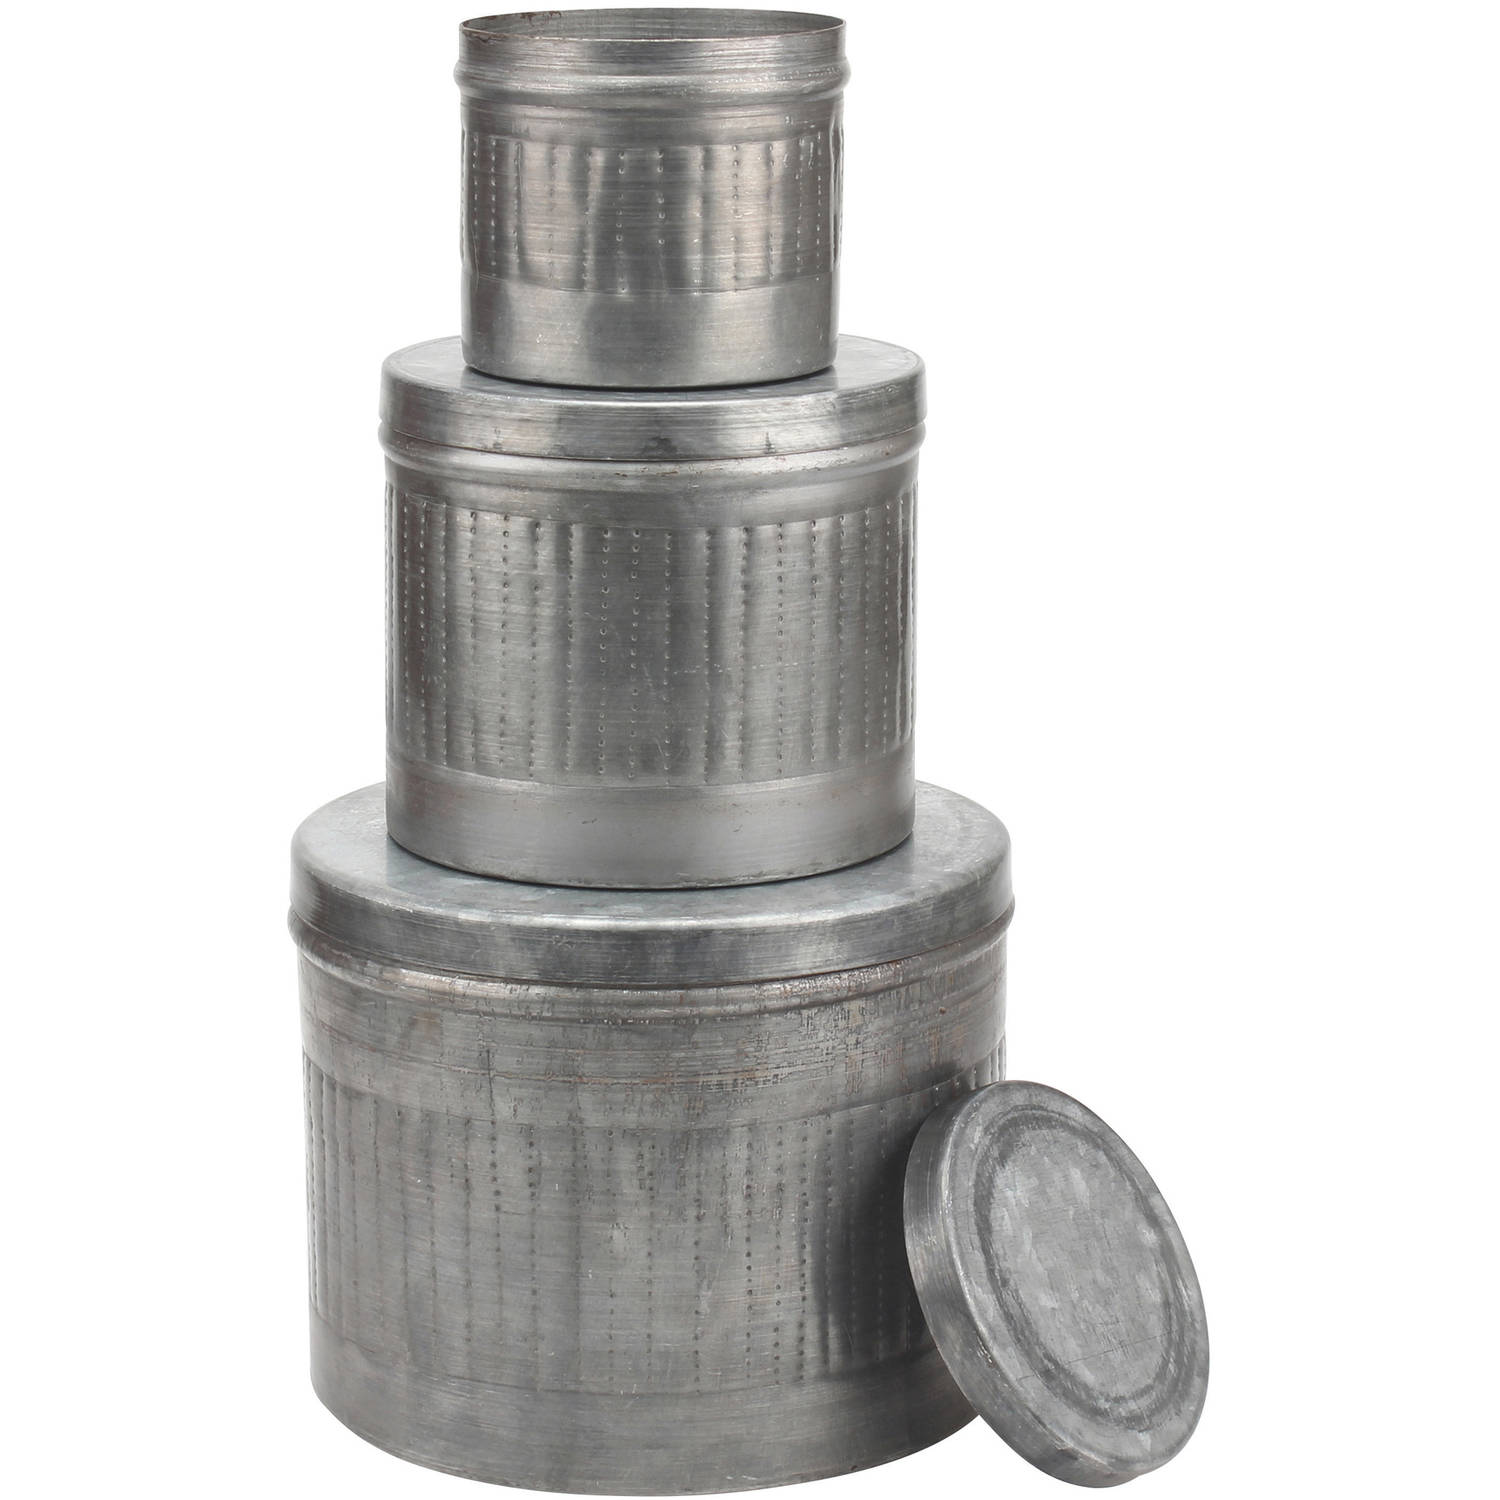 Set of 3 Aged Galvanized Metal Round Storage Boxes